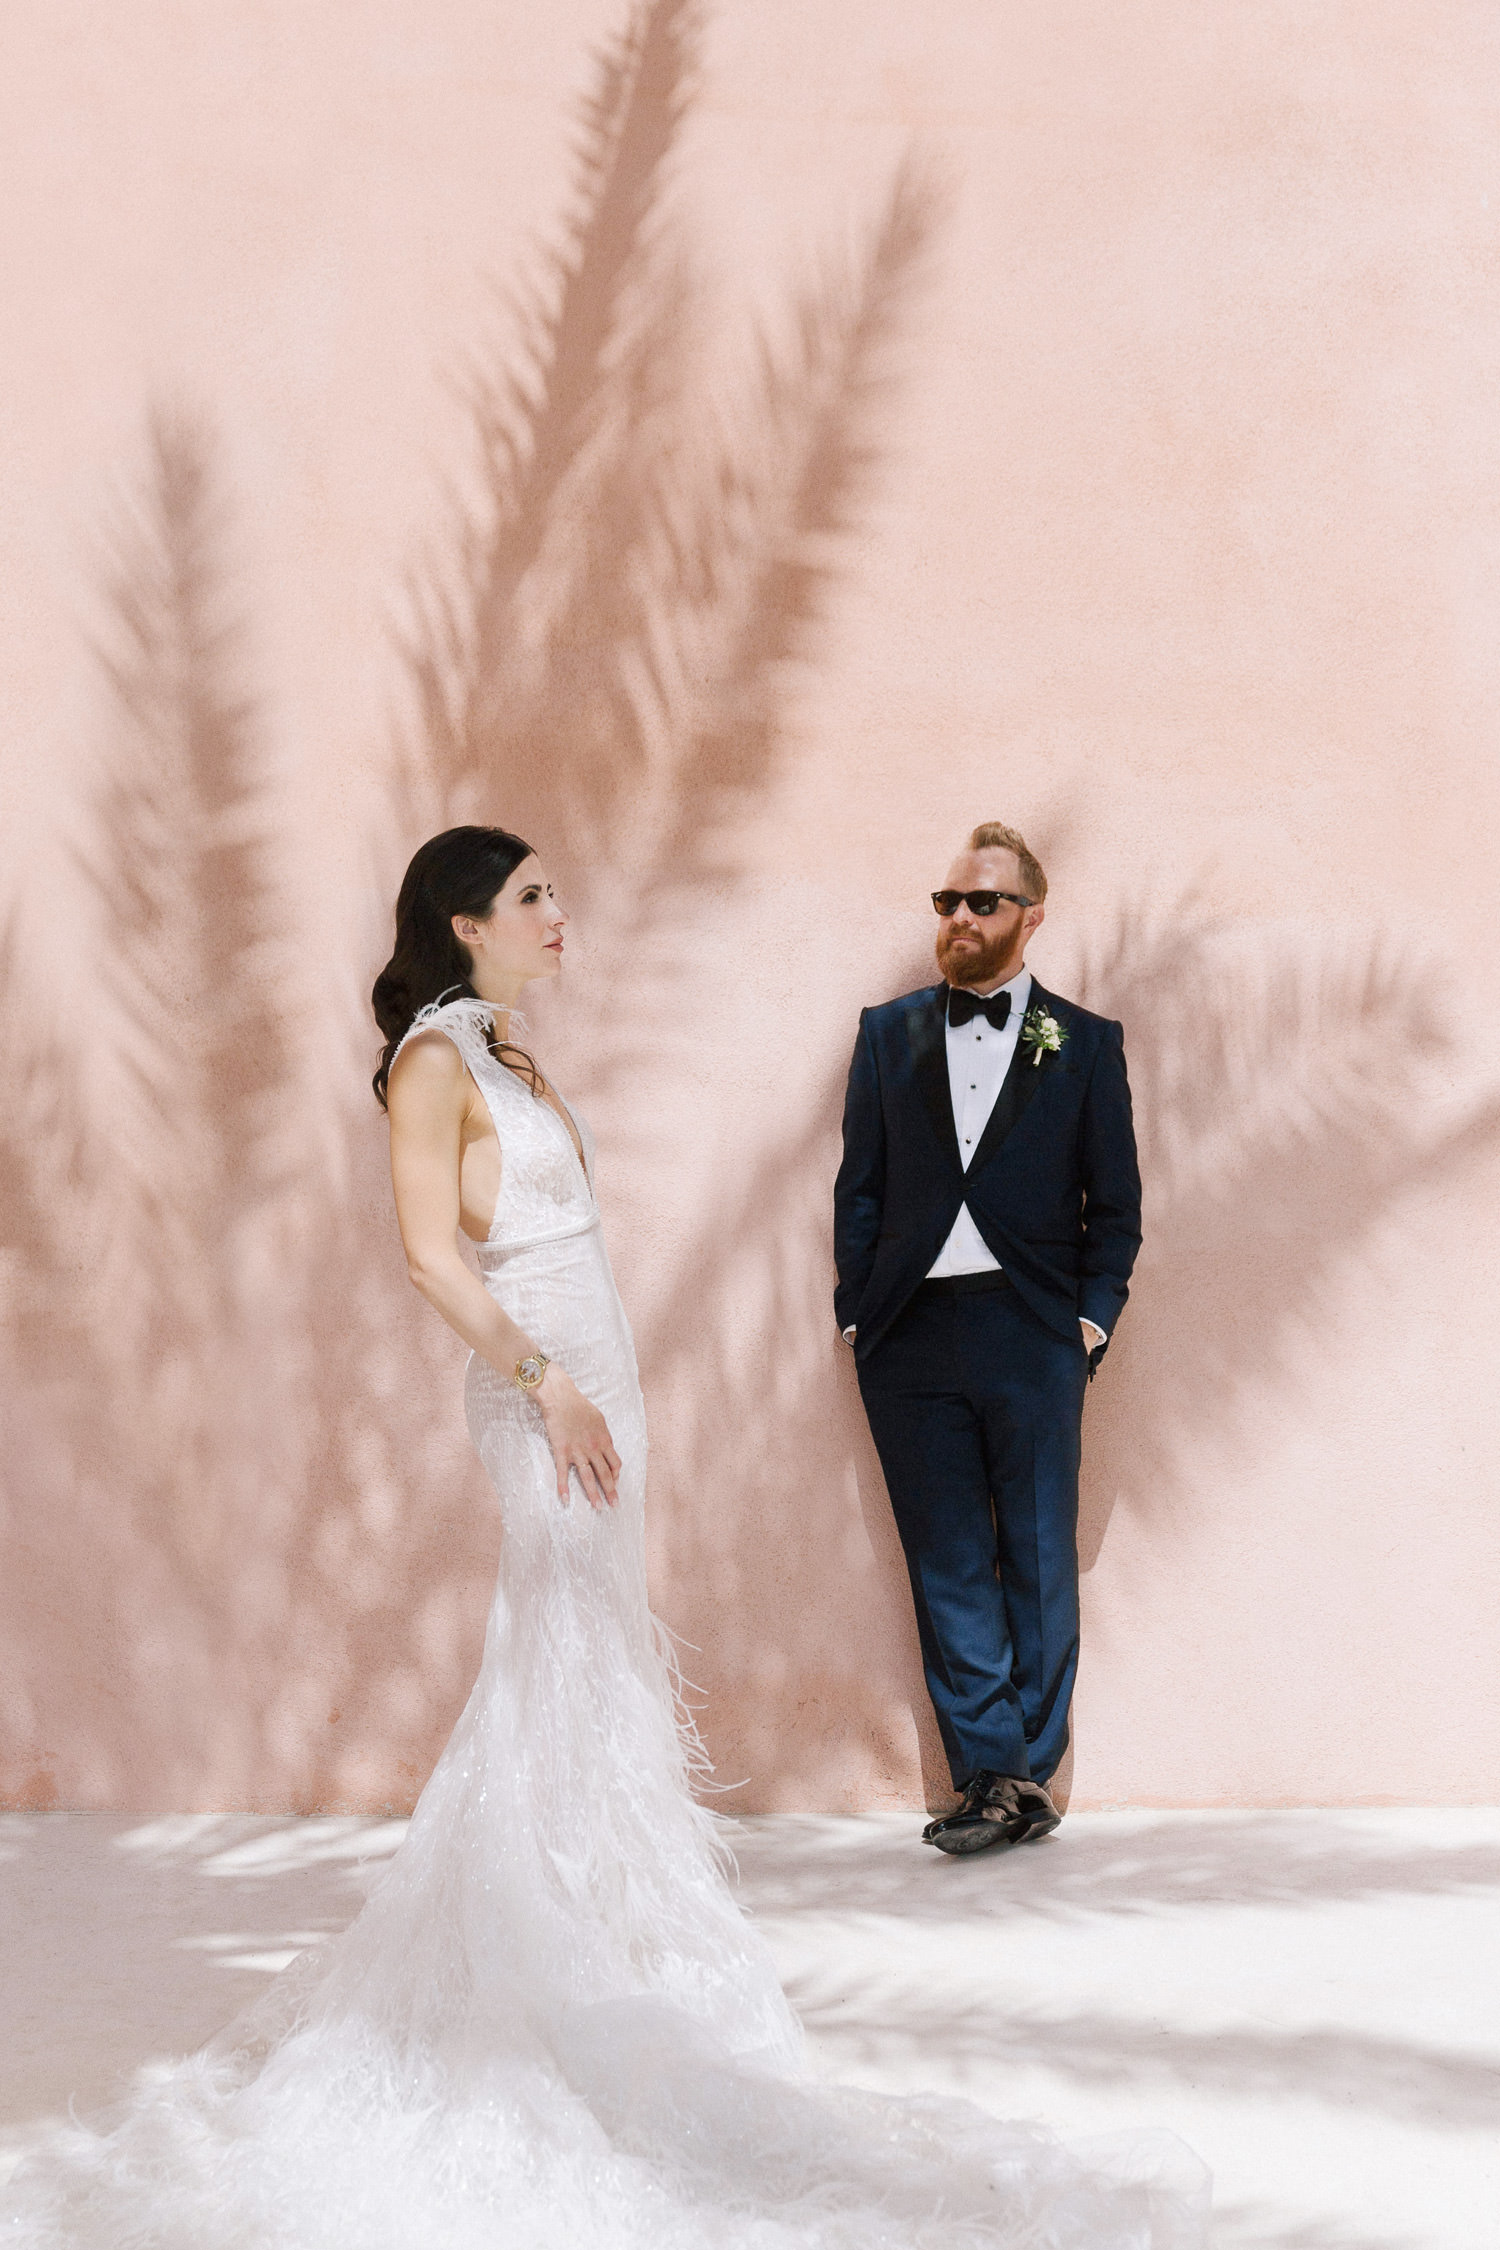 Luxury wedding at Villa San Giacomo in Positano. Bride and groom's portrait | Photo: Camilla Anchisi Photography